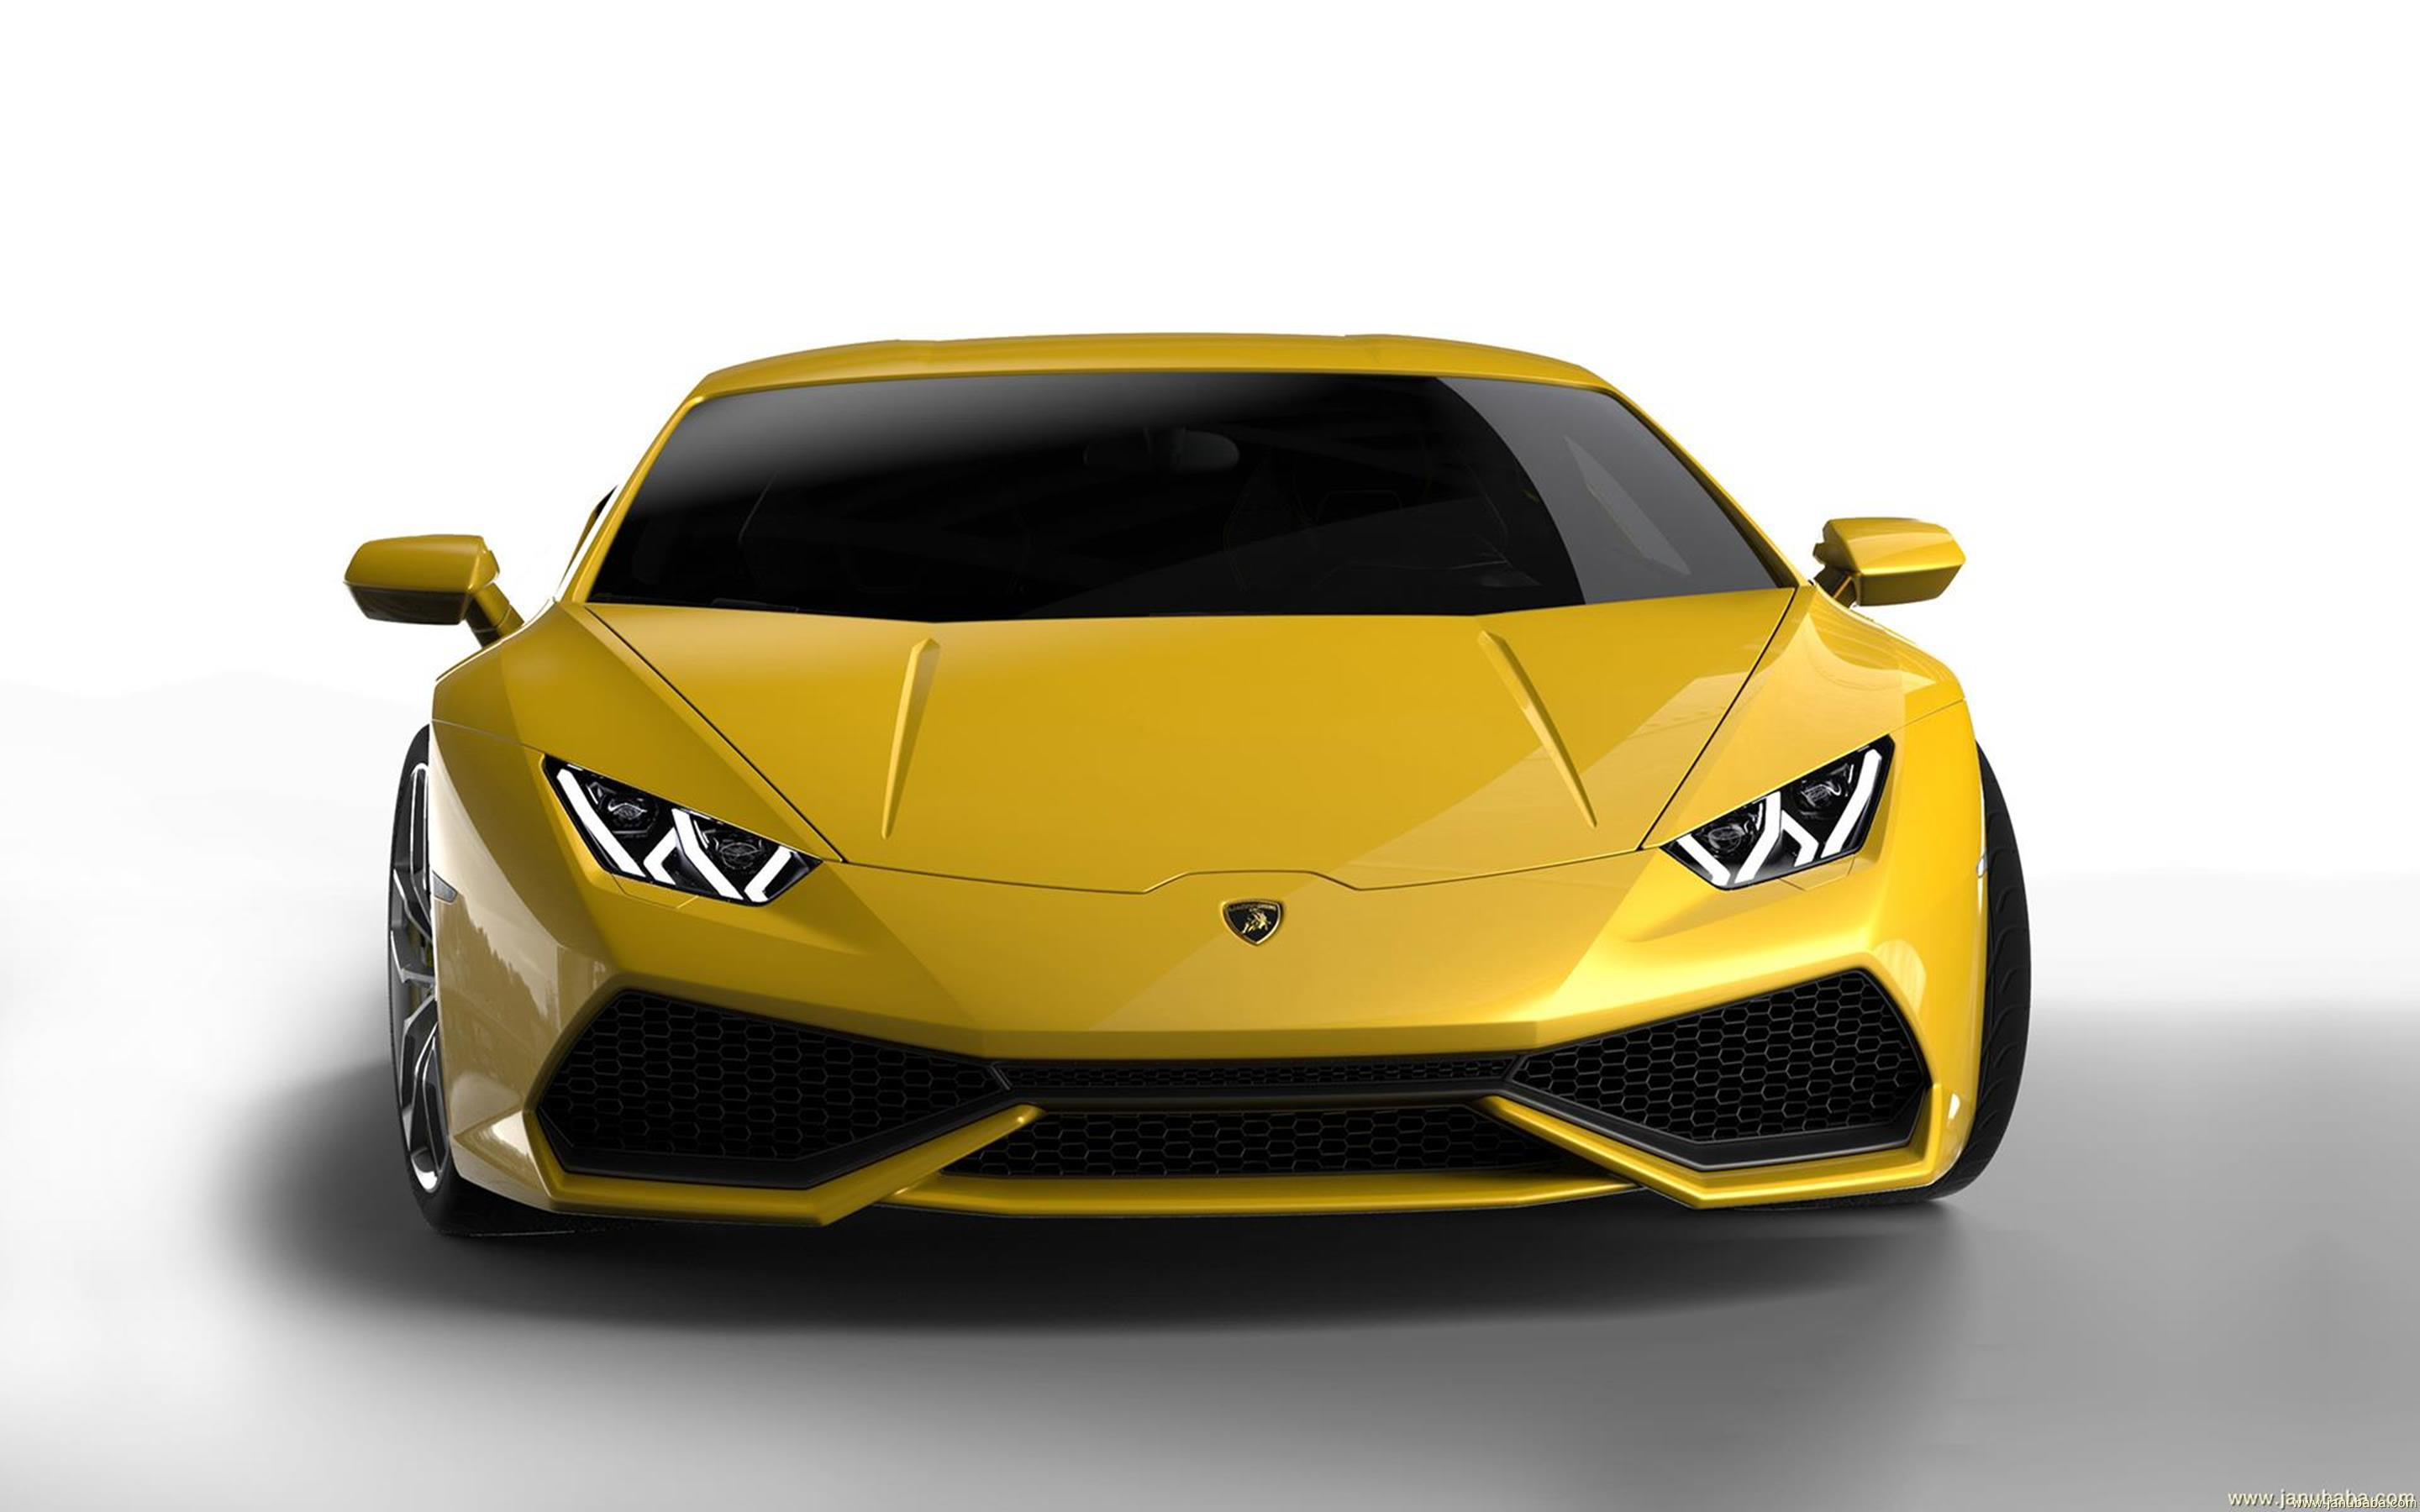 2014 Lamborghini Aventador Yellow Wallpaper 1311 Frenziacom 2880x1800